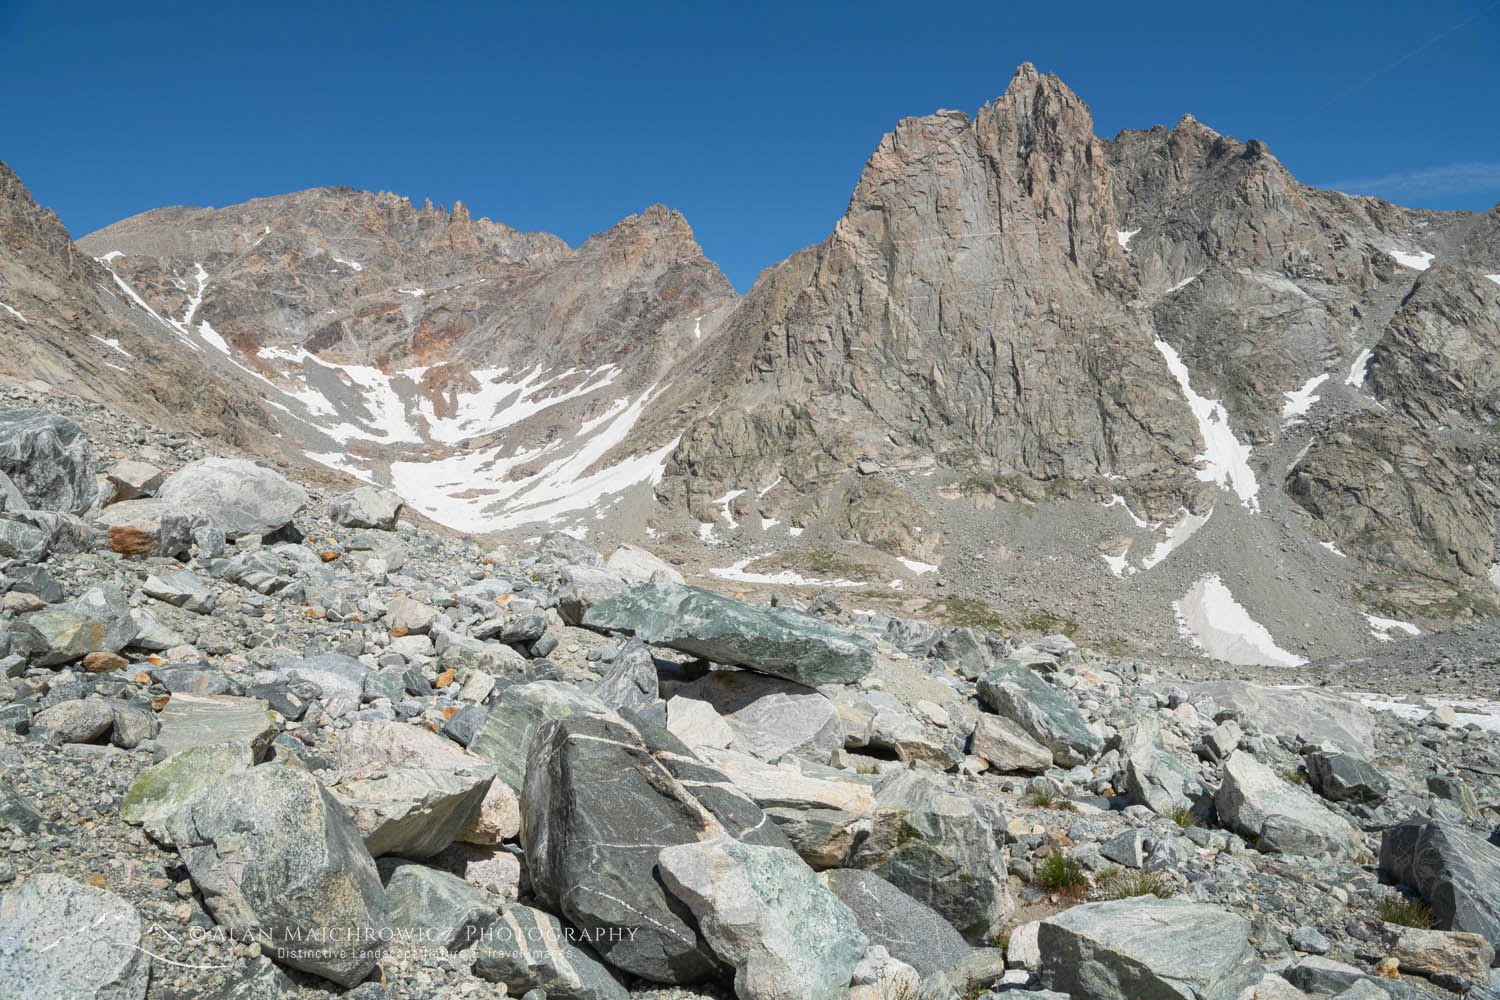 Bonney Peak and Mount Helen, Bridger Wilderness, Wind River Range Wyoming